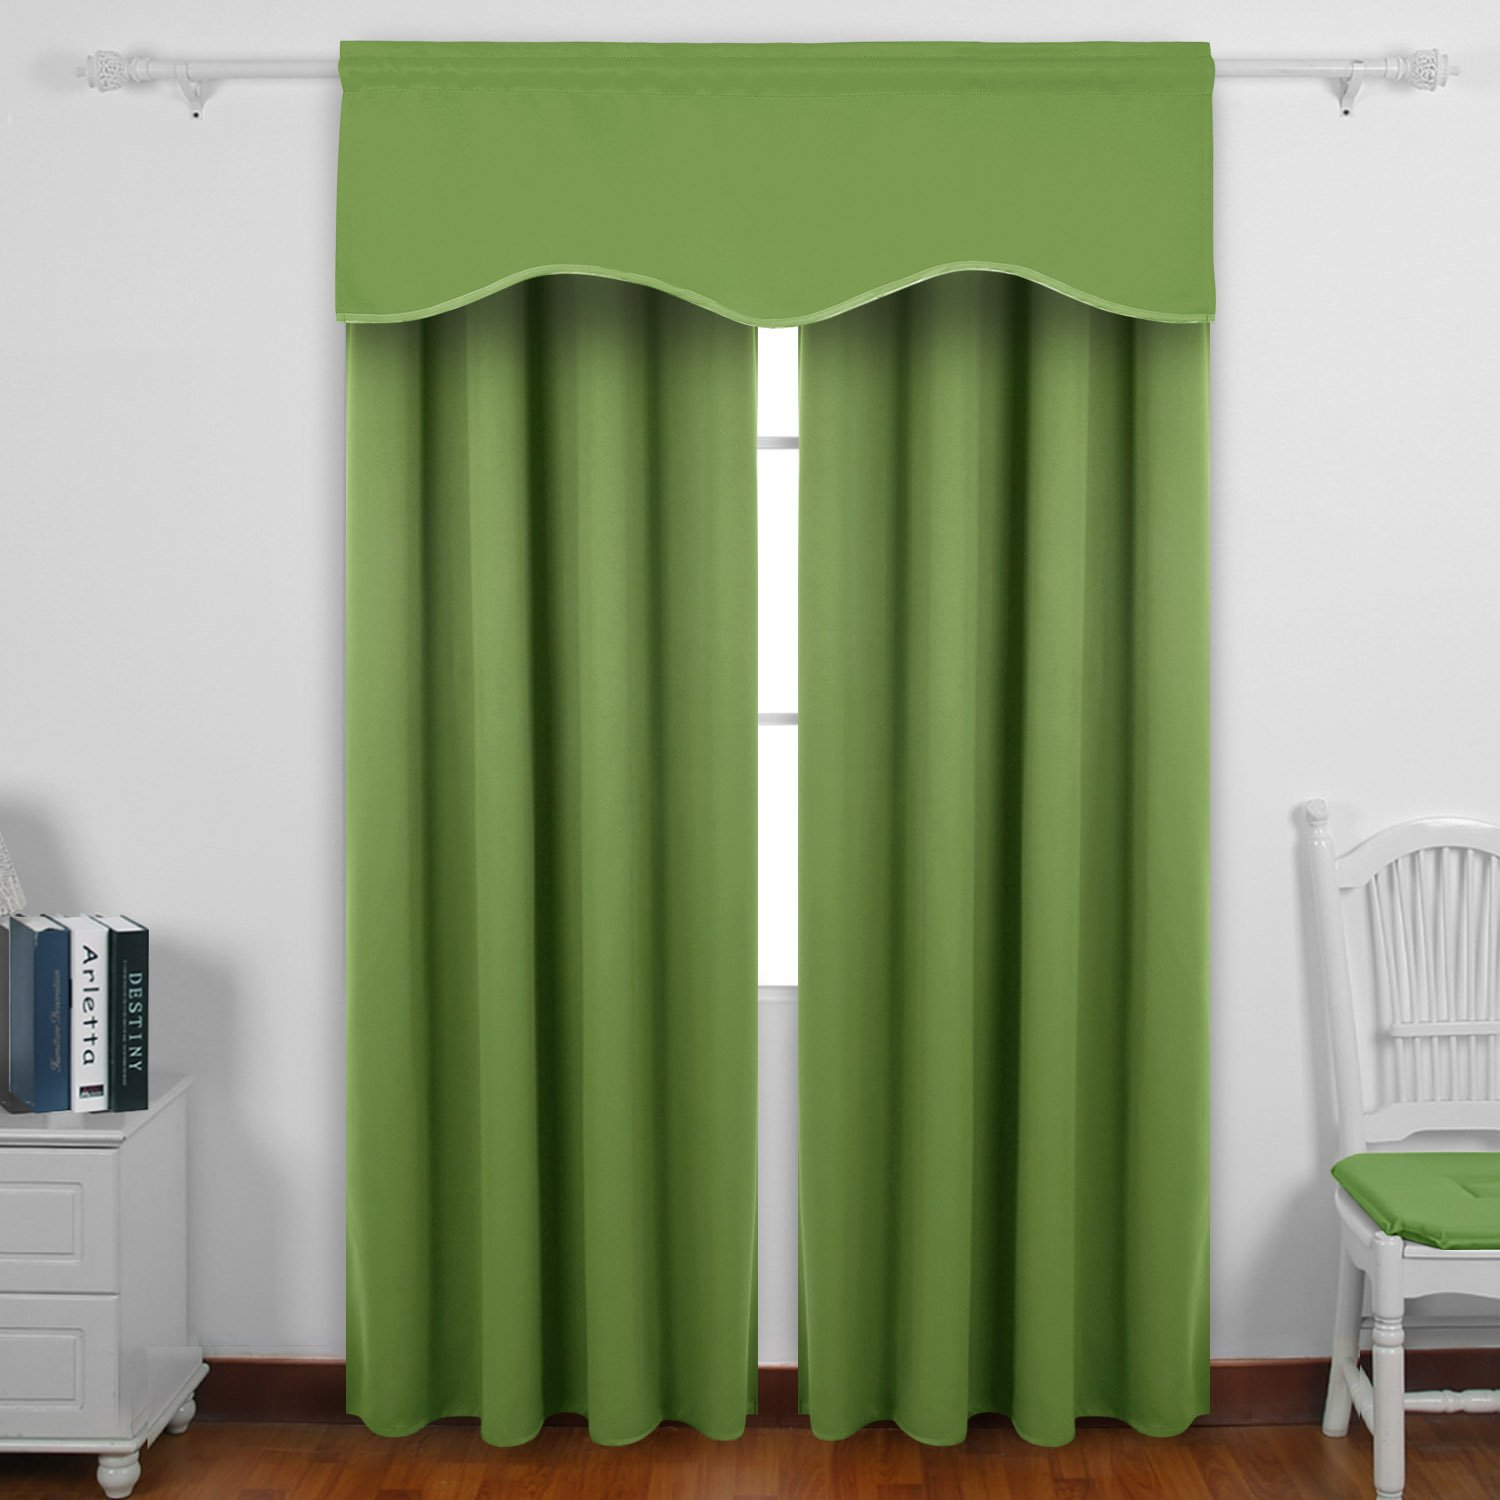 Deconovo Solid Color Valance Rod Pocket Curtains Short Window Curtains Blackout Curtains Scalloped Curtains for School Forest Green